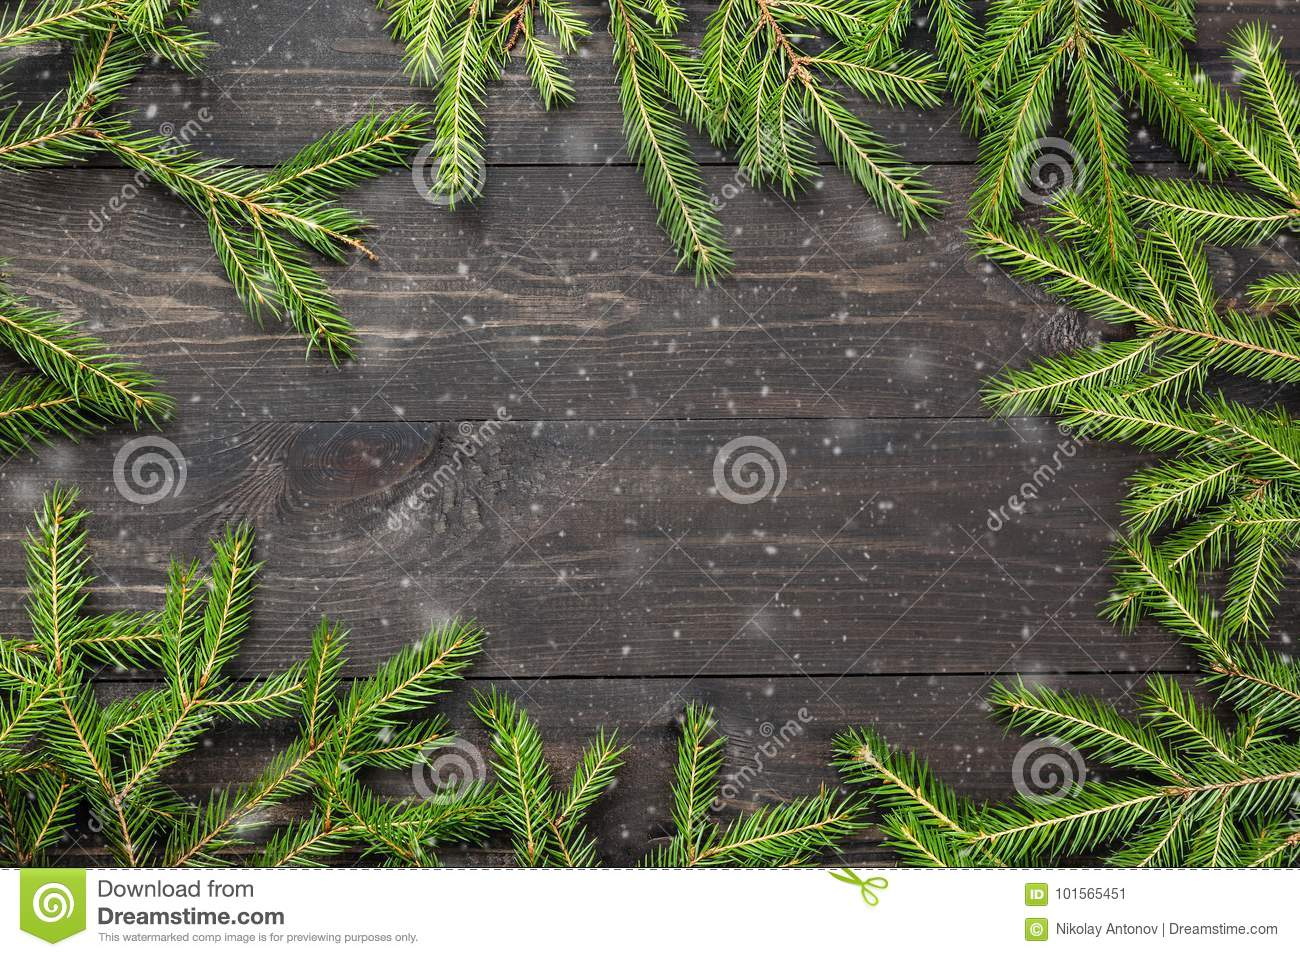 Christmas fir tree on a dark wooden board with snow. Christmas or new year frame for your project with copy space.